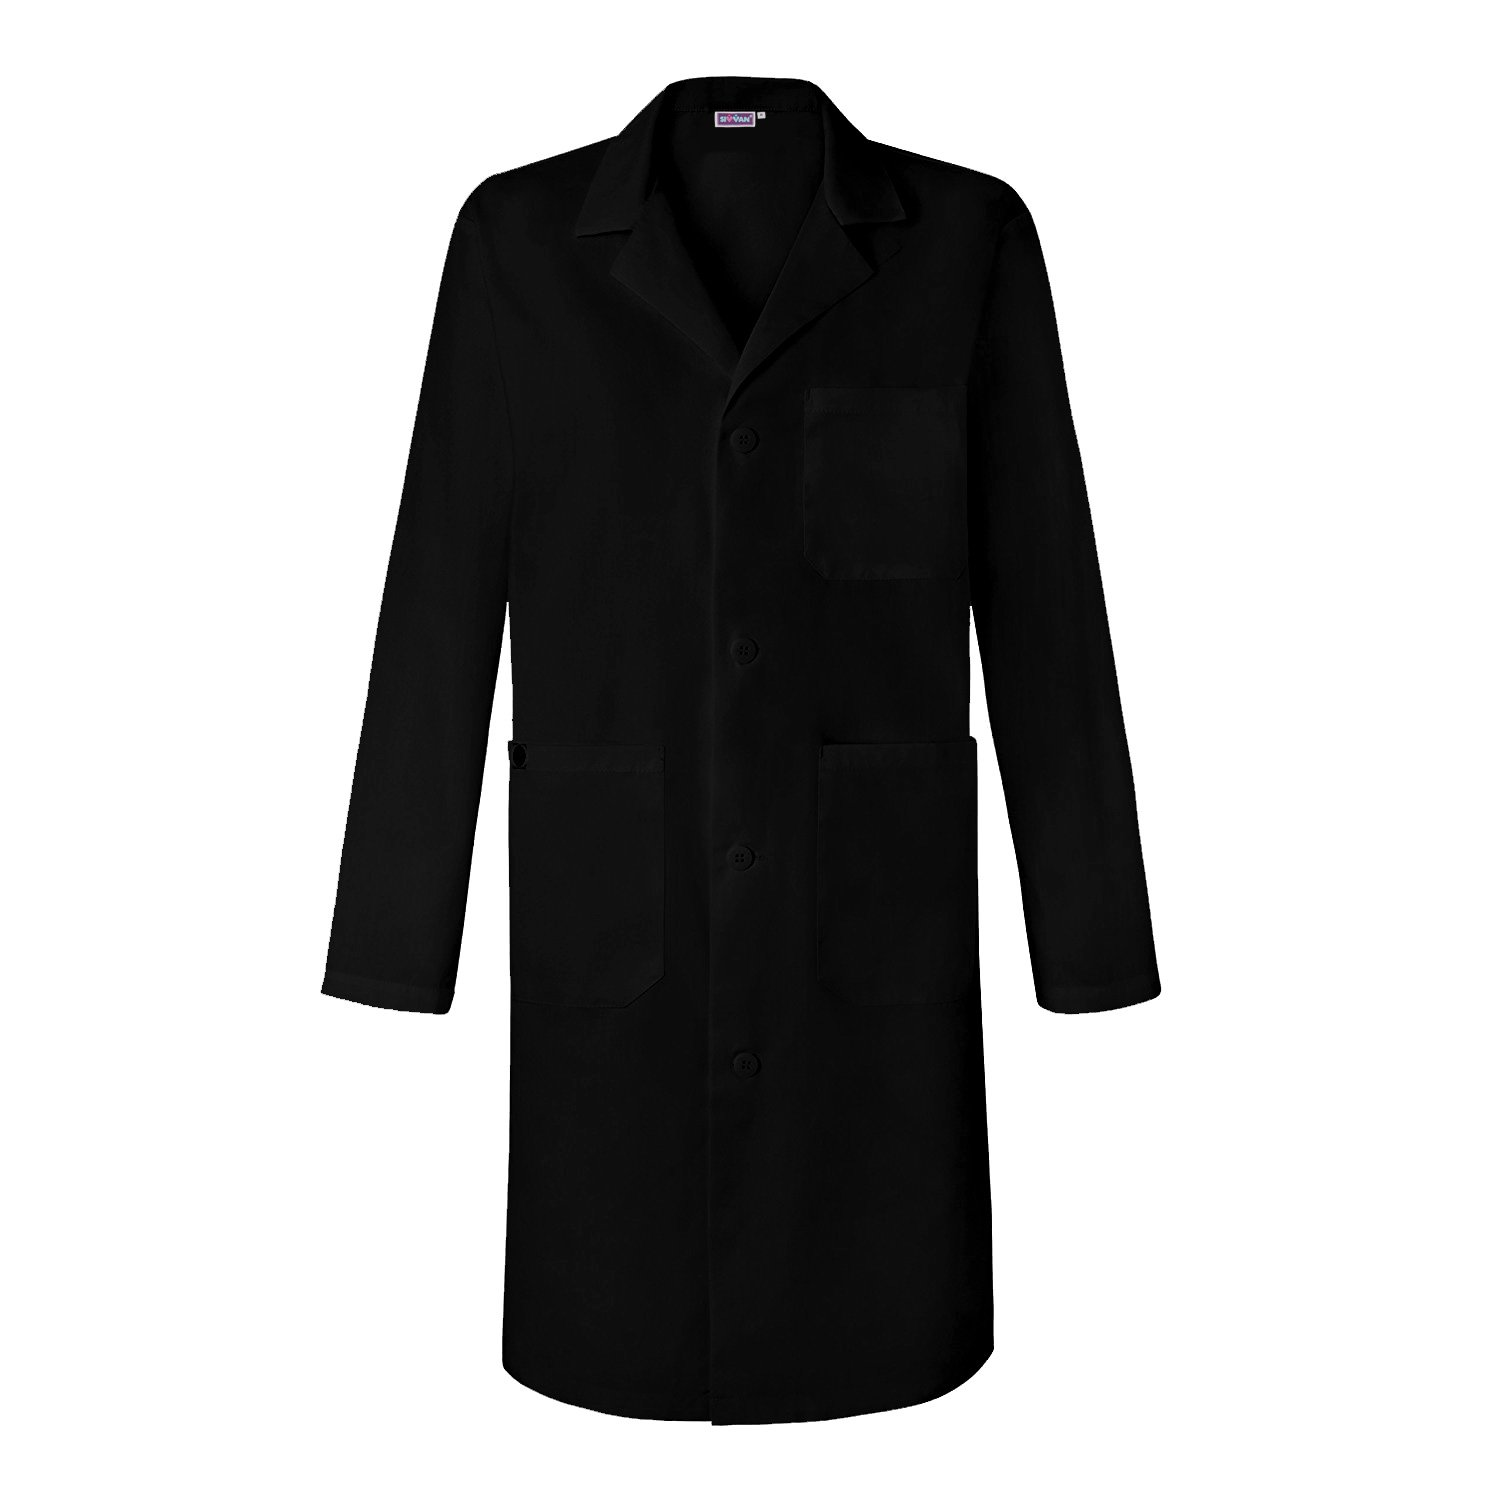 Sivvan Unisex 39 inch Lab Coat - Back Pleated - S8802 - Black - 2X